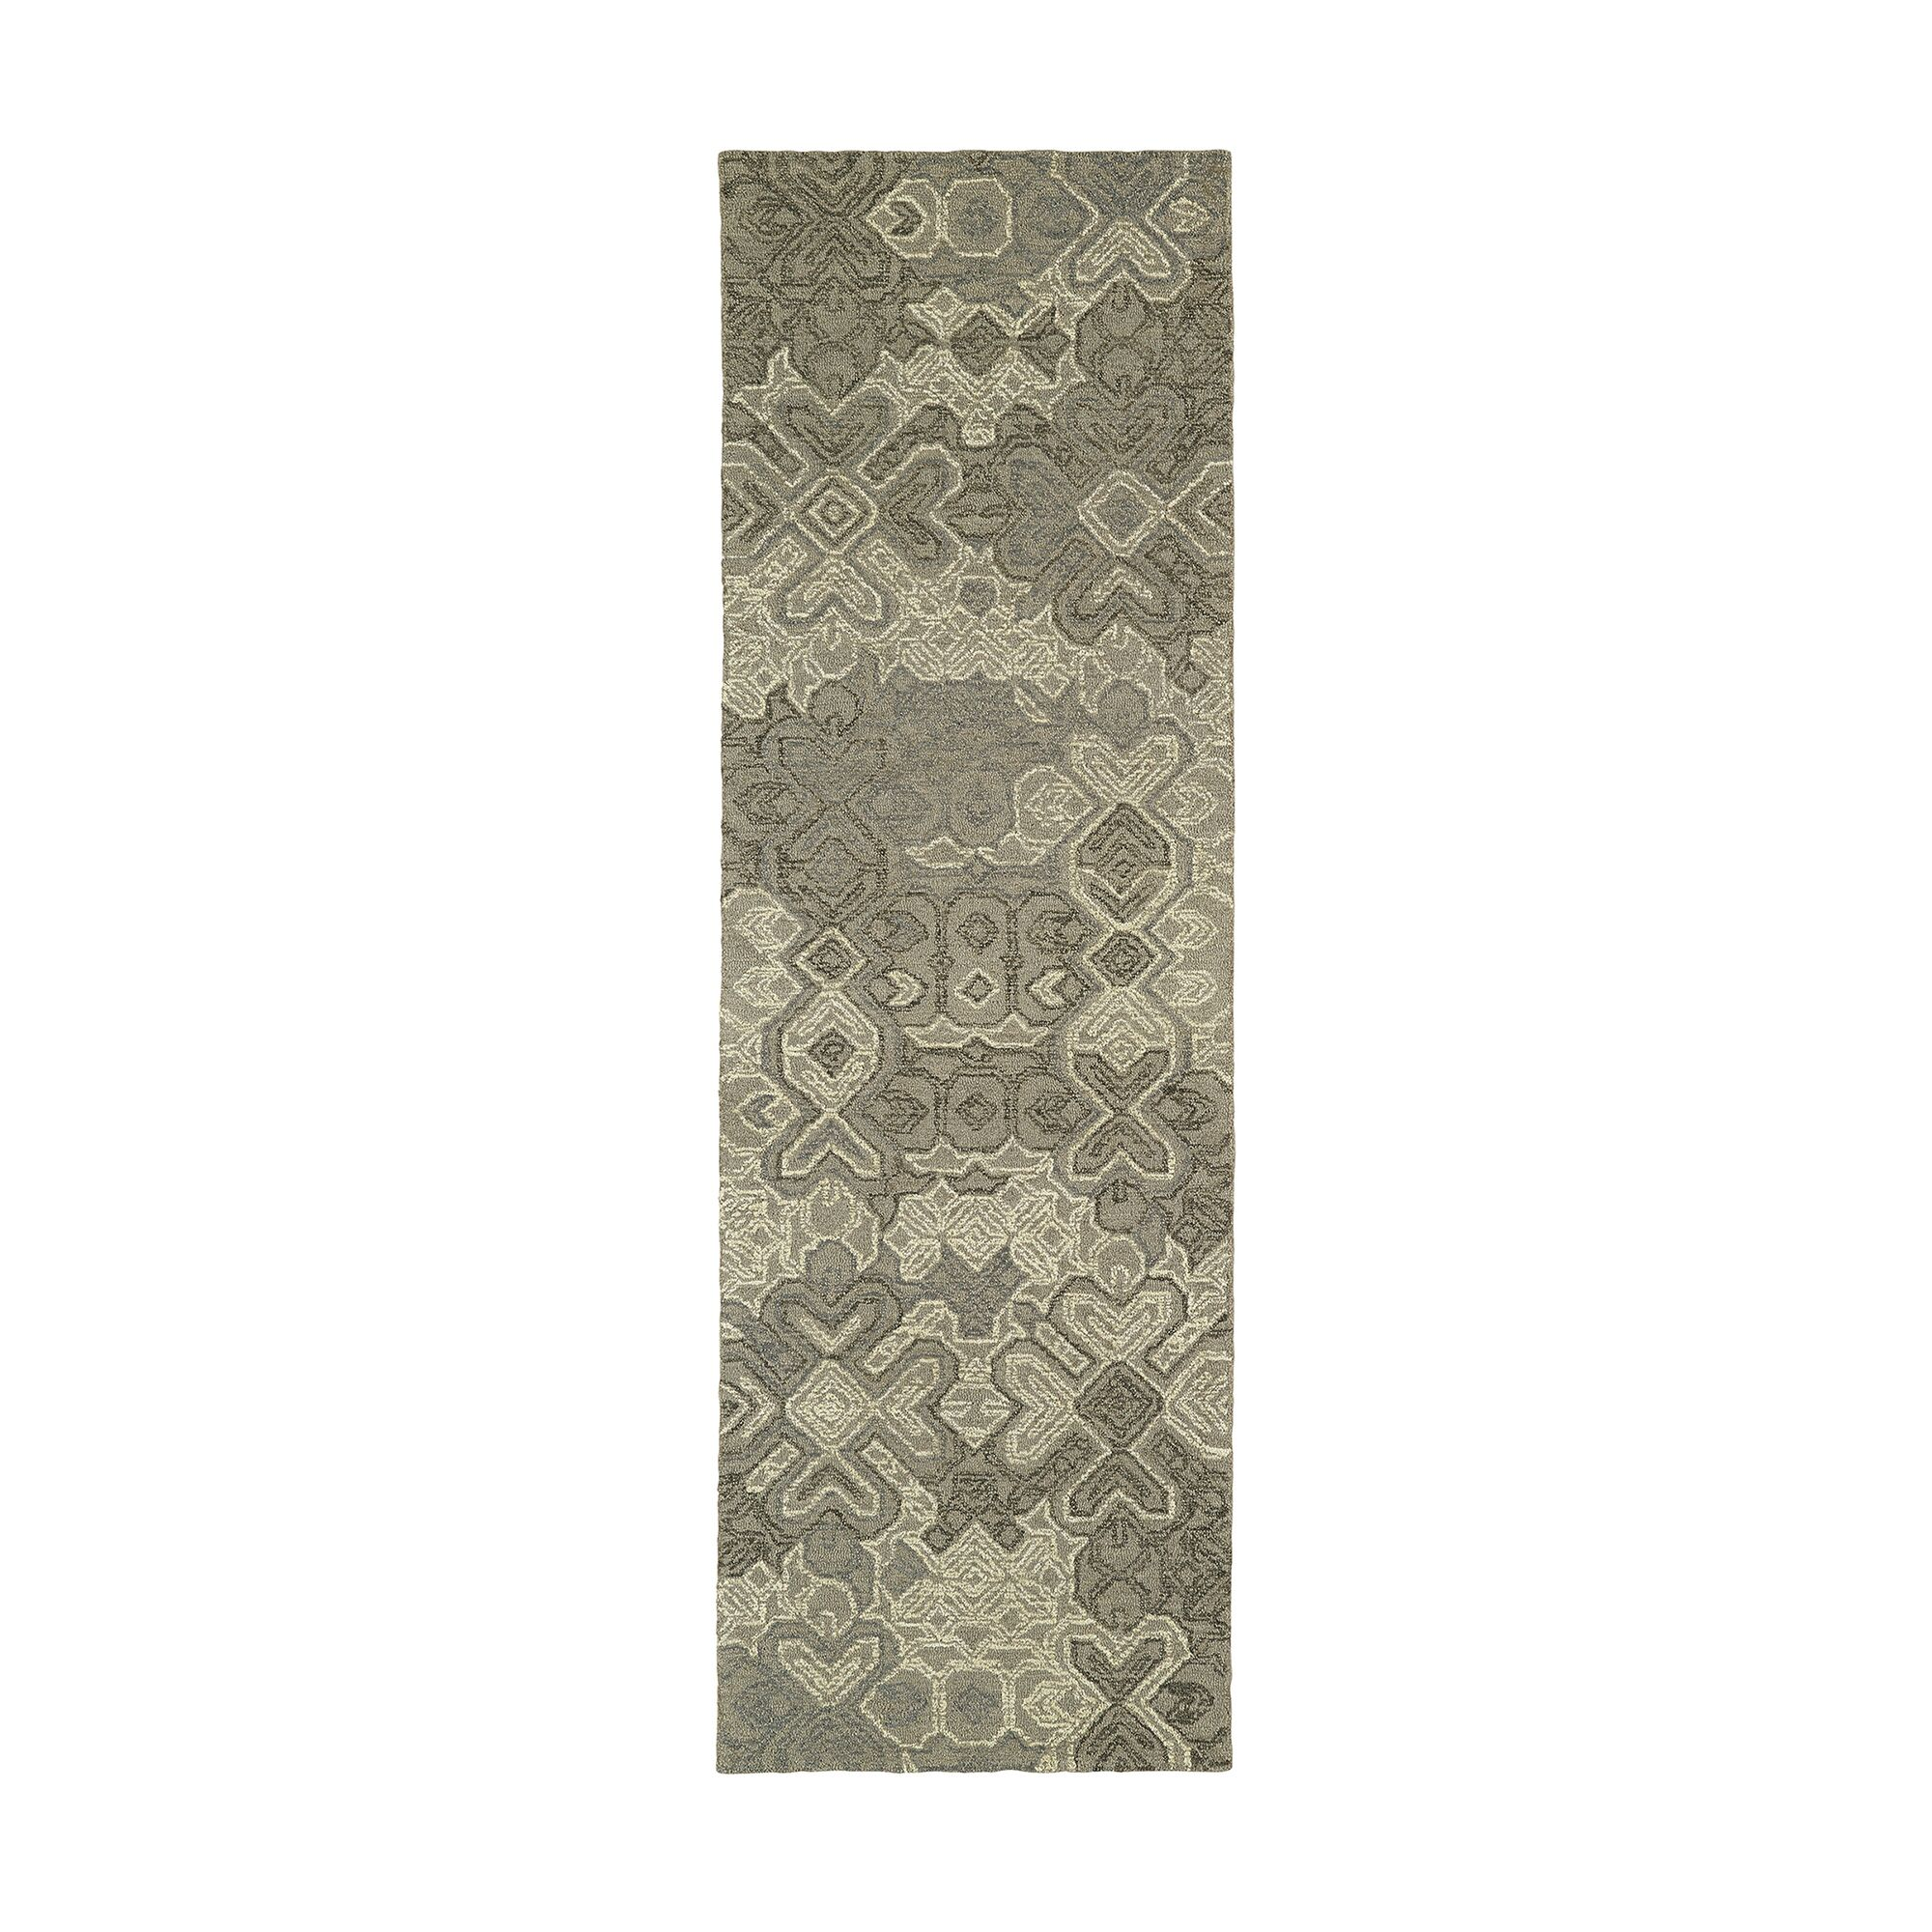 Stockman Hand-Tufted Wool Taupe/Gray Area Rug Rug Size: Runner 2'6